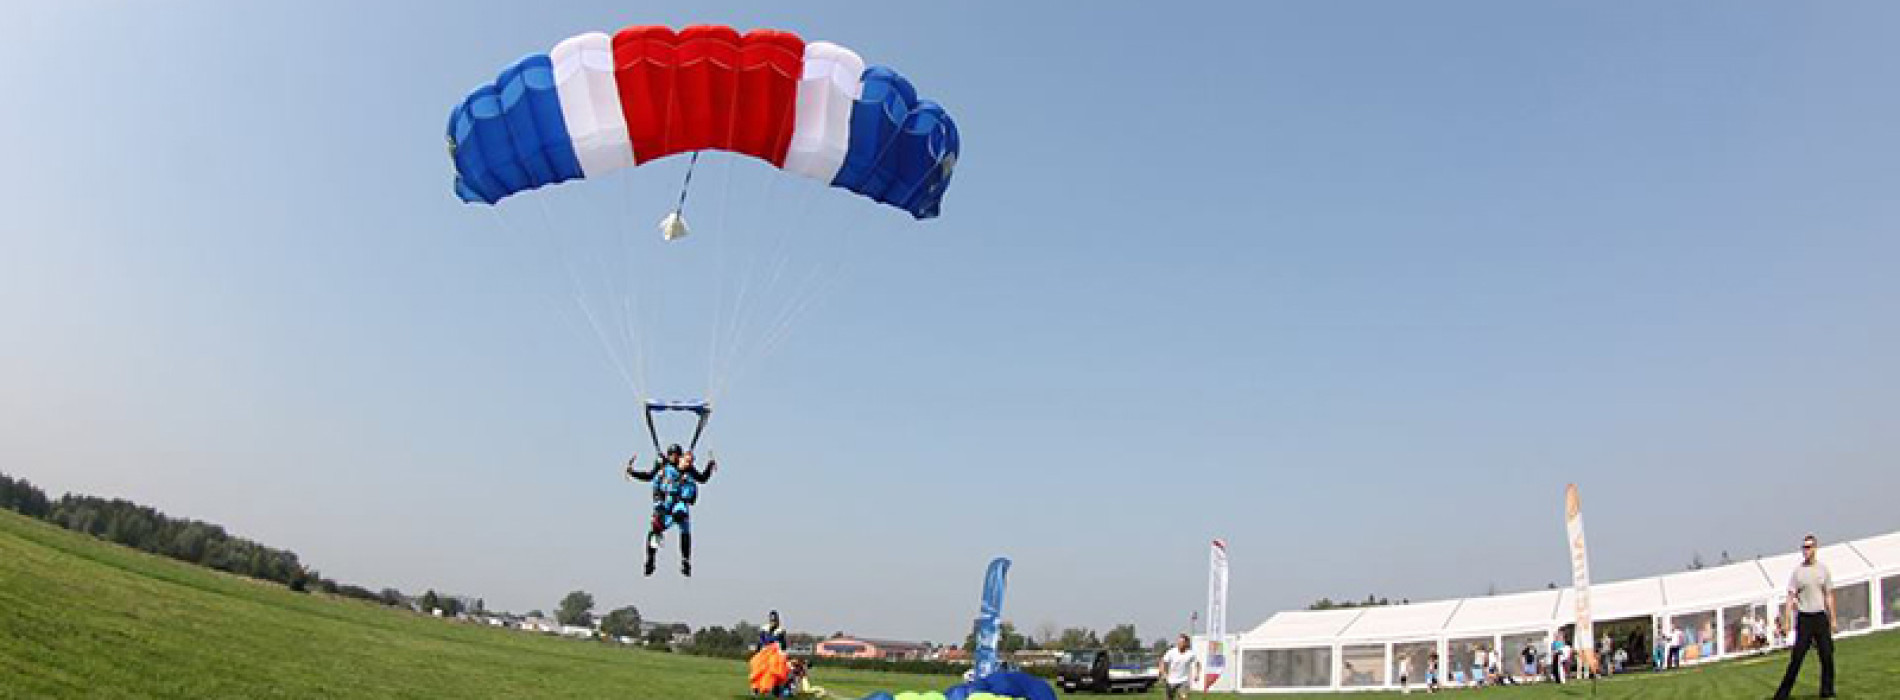 Wings of freedom: skydiving with a disability